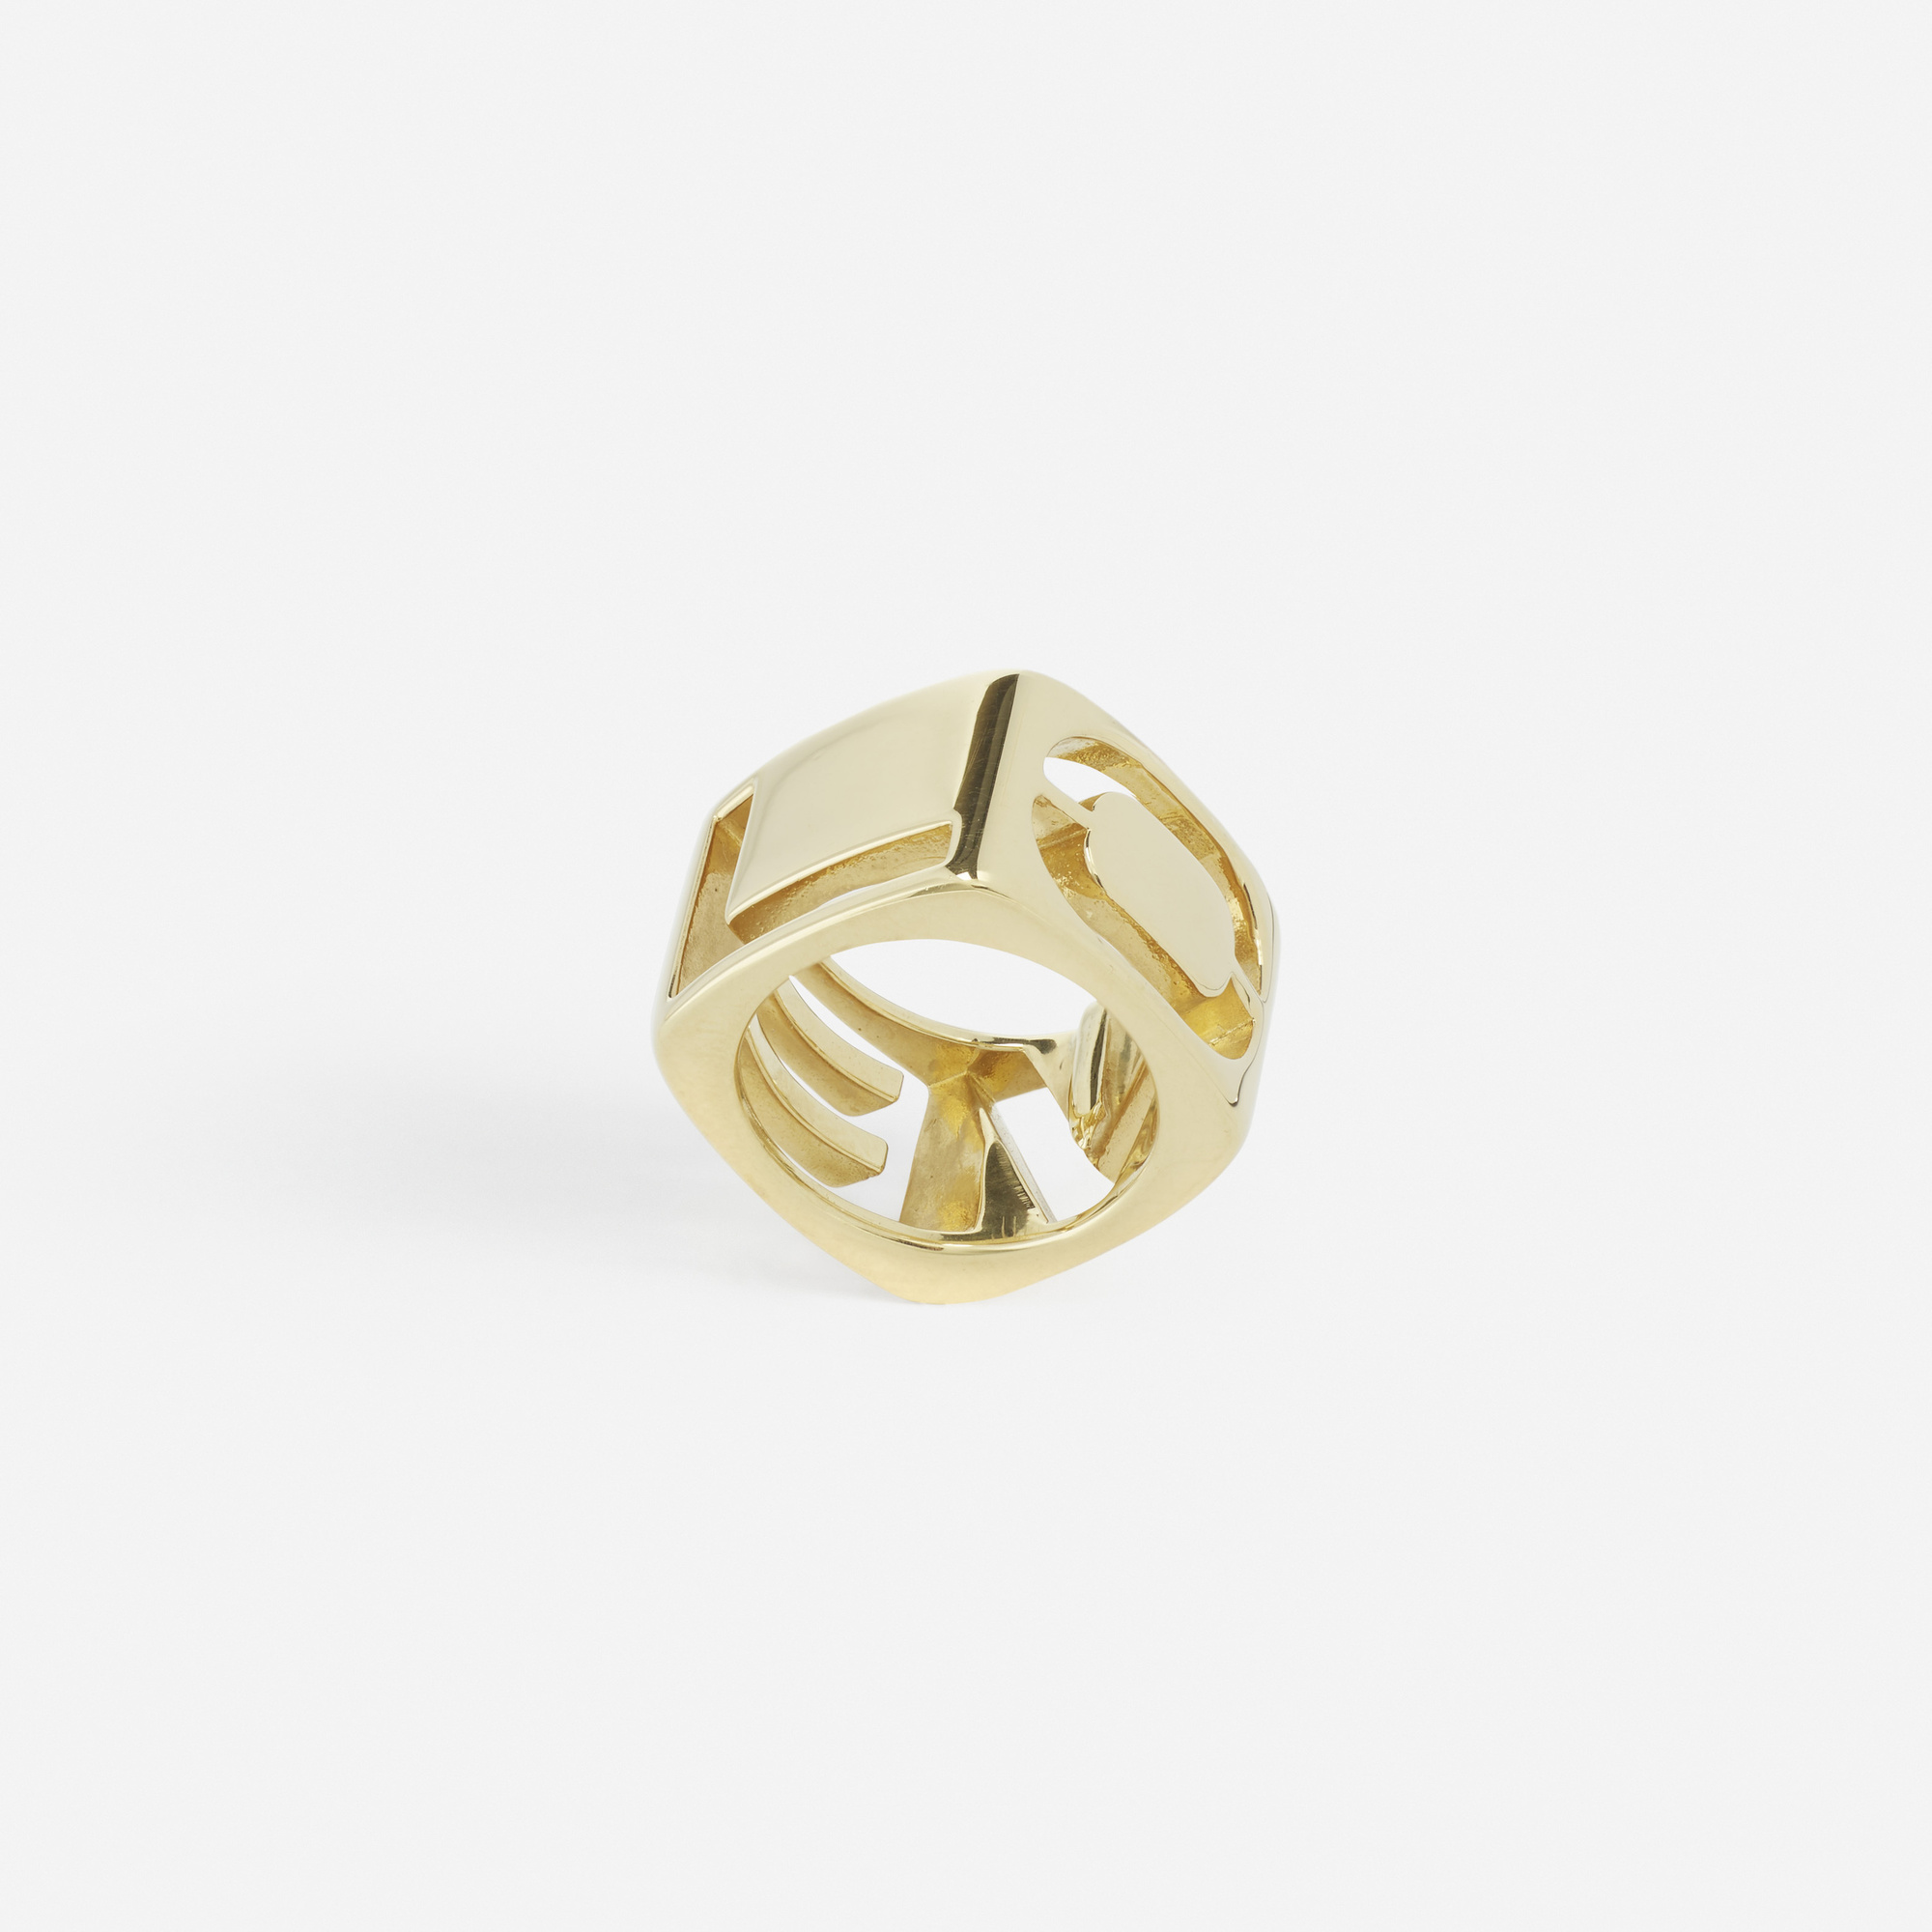 230: Tiffany & Co. / A gold Love ring (2 of 2)